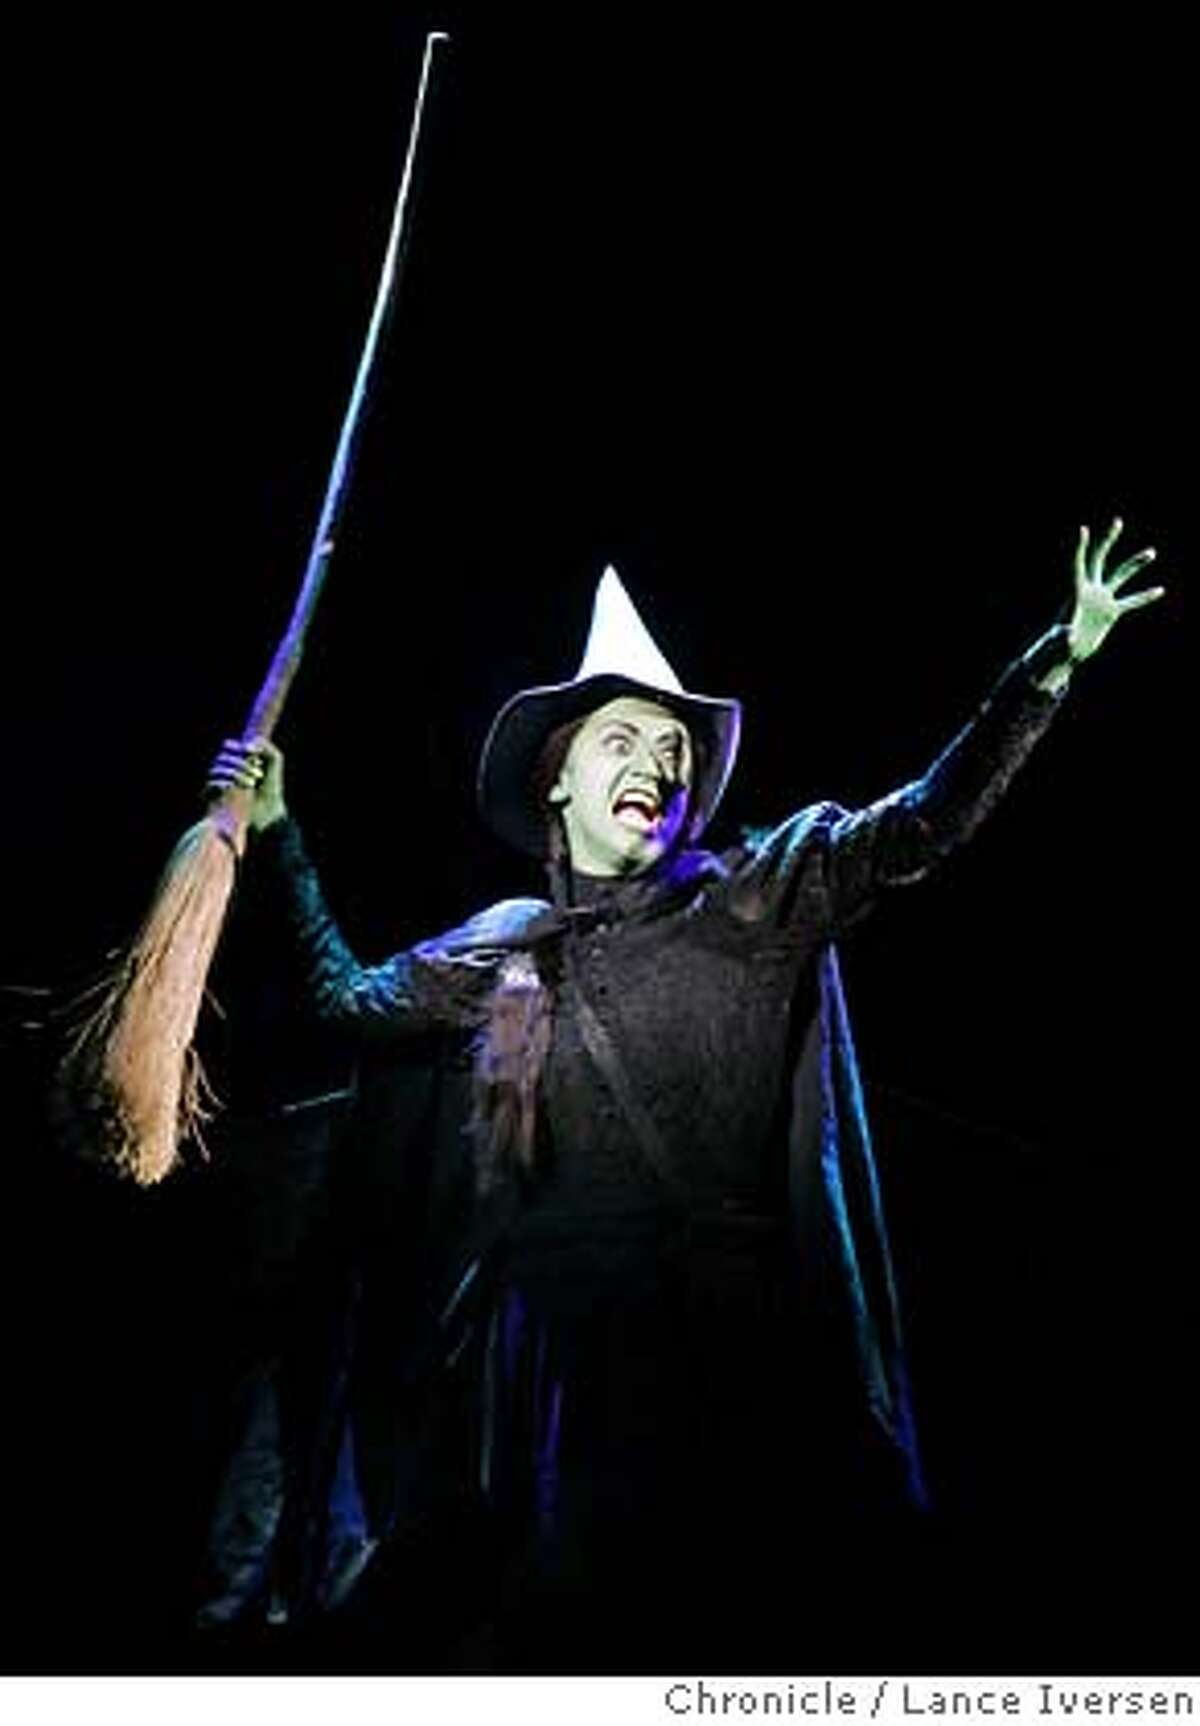 WICKED_0328.jpg_ Eden Espinosa playing Elphaba the witch in the Defying Gravity scene Act 1. A new Musical Wicked, the untold story of the witches of OZ opened in San Francisco Friday night at the Orpheum Theatre. By Lance Iversen/San Francisco Chronicle MANDATORY CREDIT PHOTOG AND SAN FRANCISCO CHRONICLE.